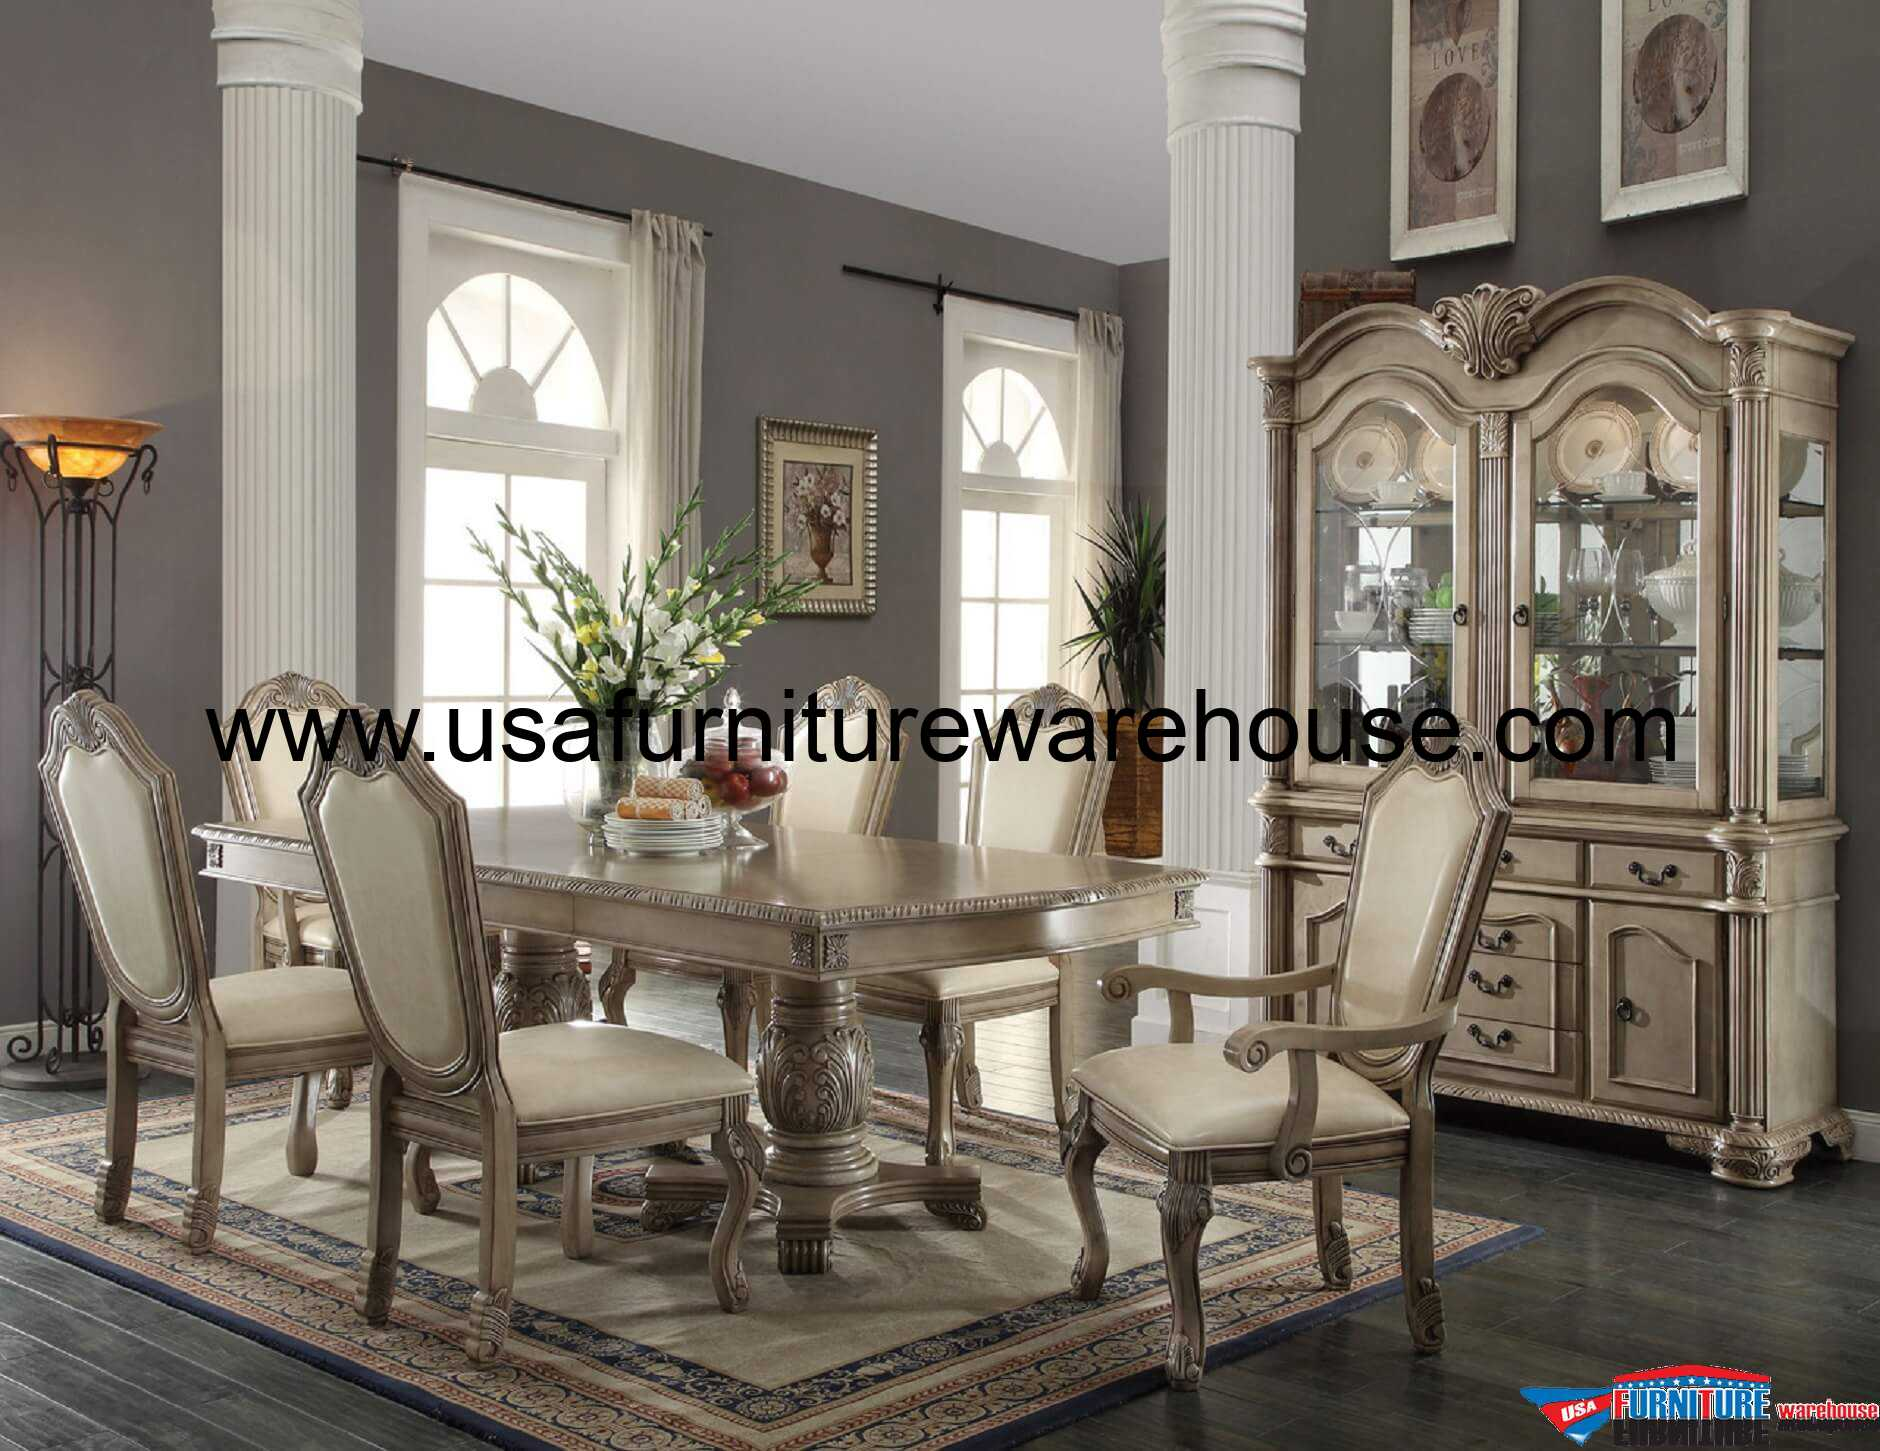 Formal Dining Room Chairs 9 Piece Acme Chateau De Ville Antique White Finish Dining Set